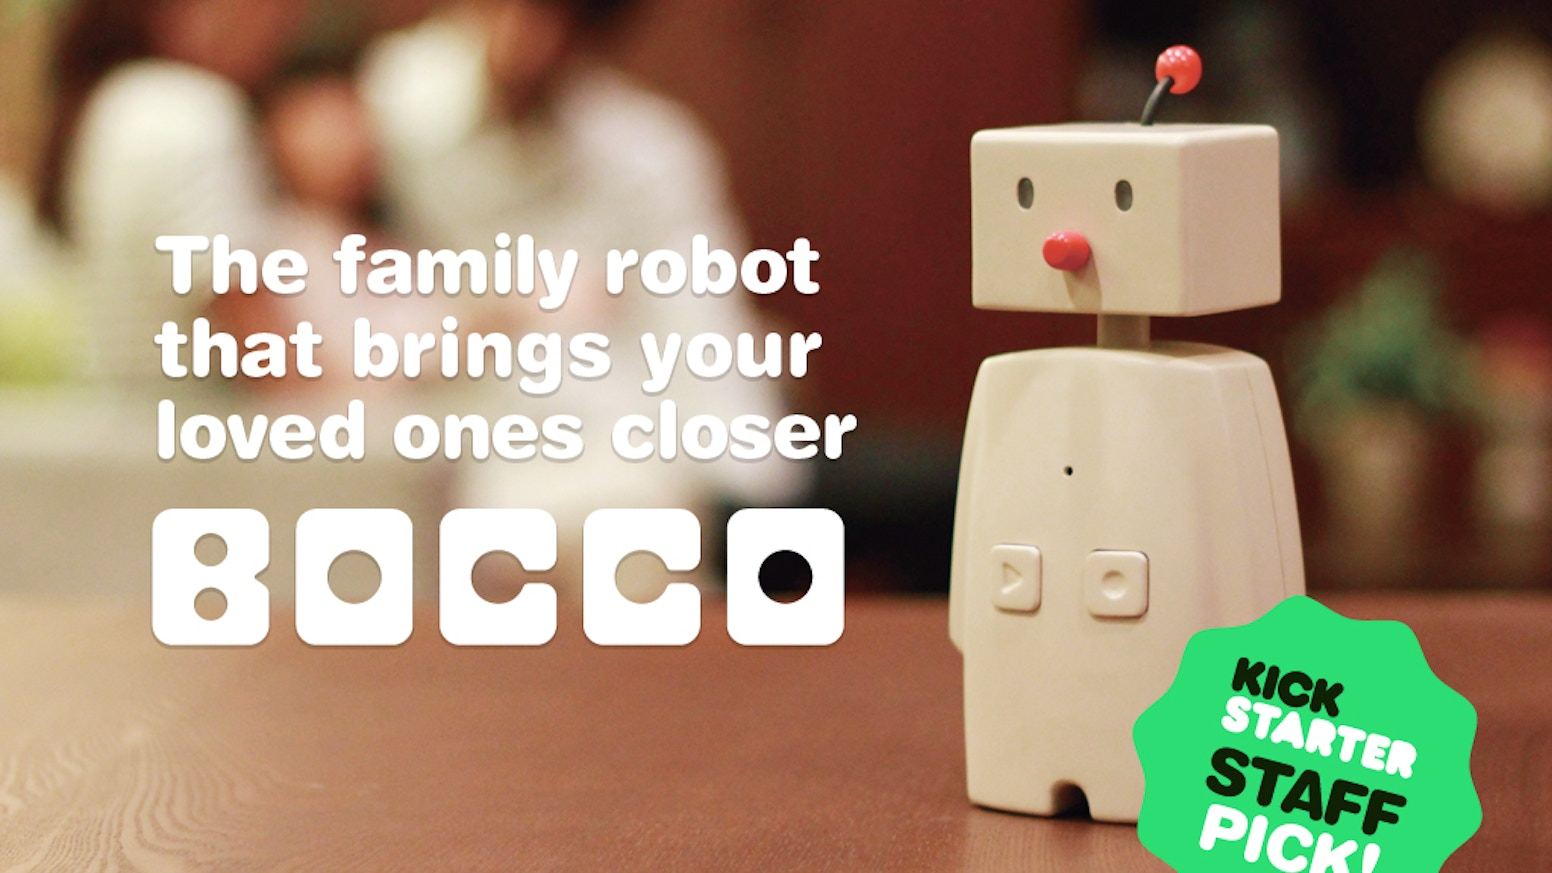 Wherever you are, BOCCO can keep you connected to your family.